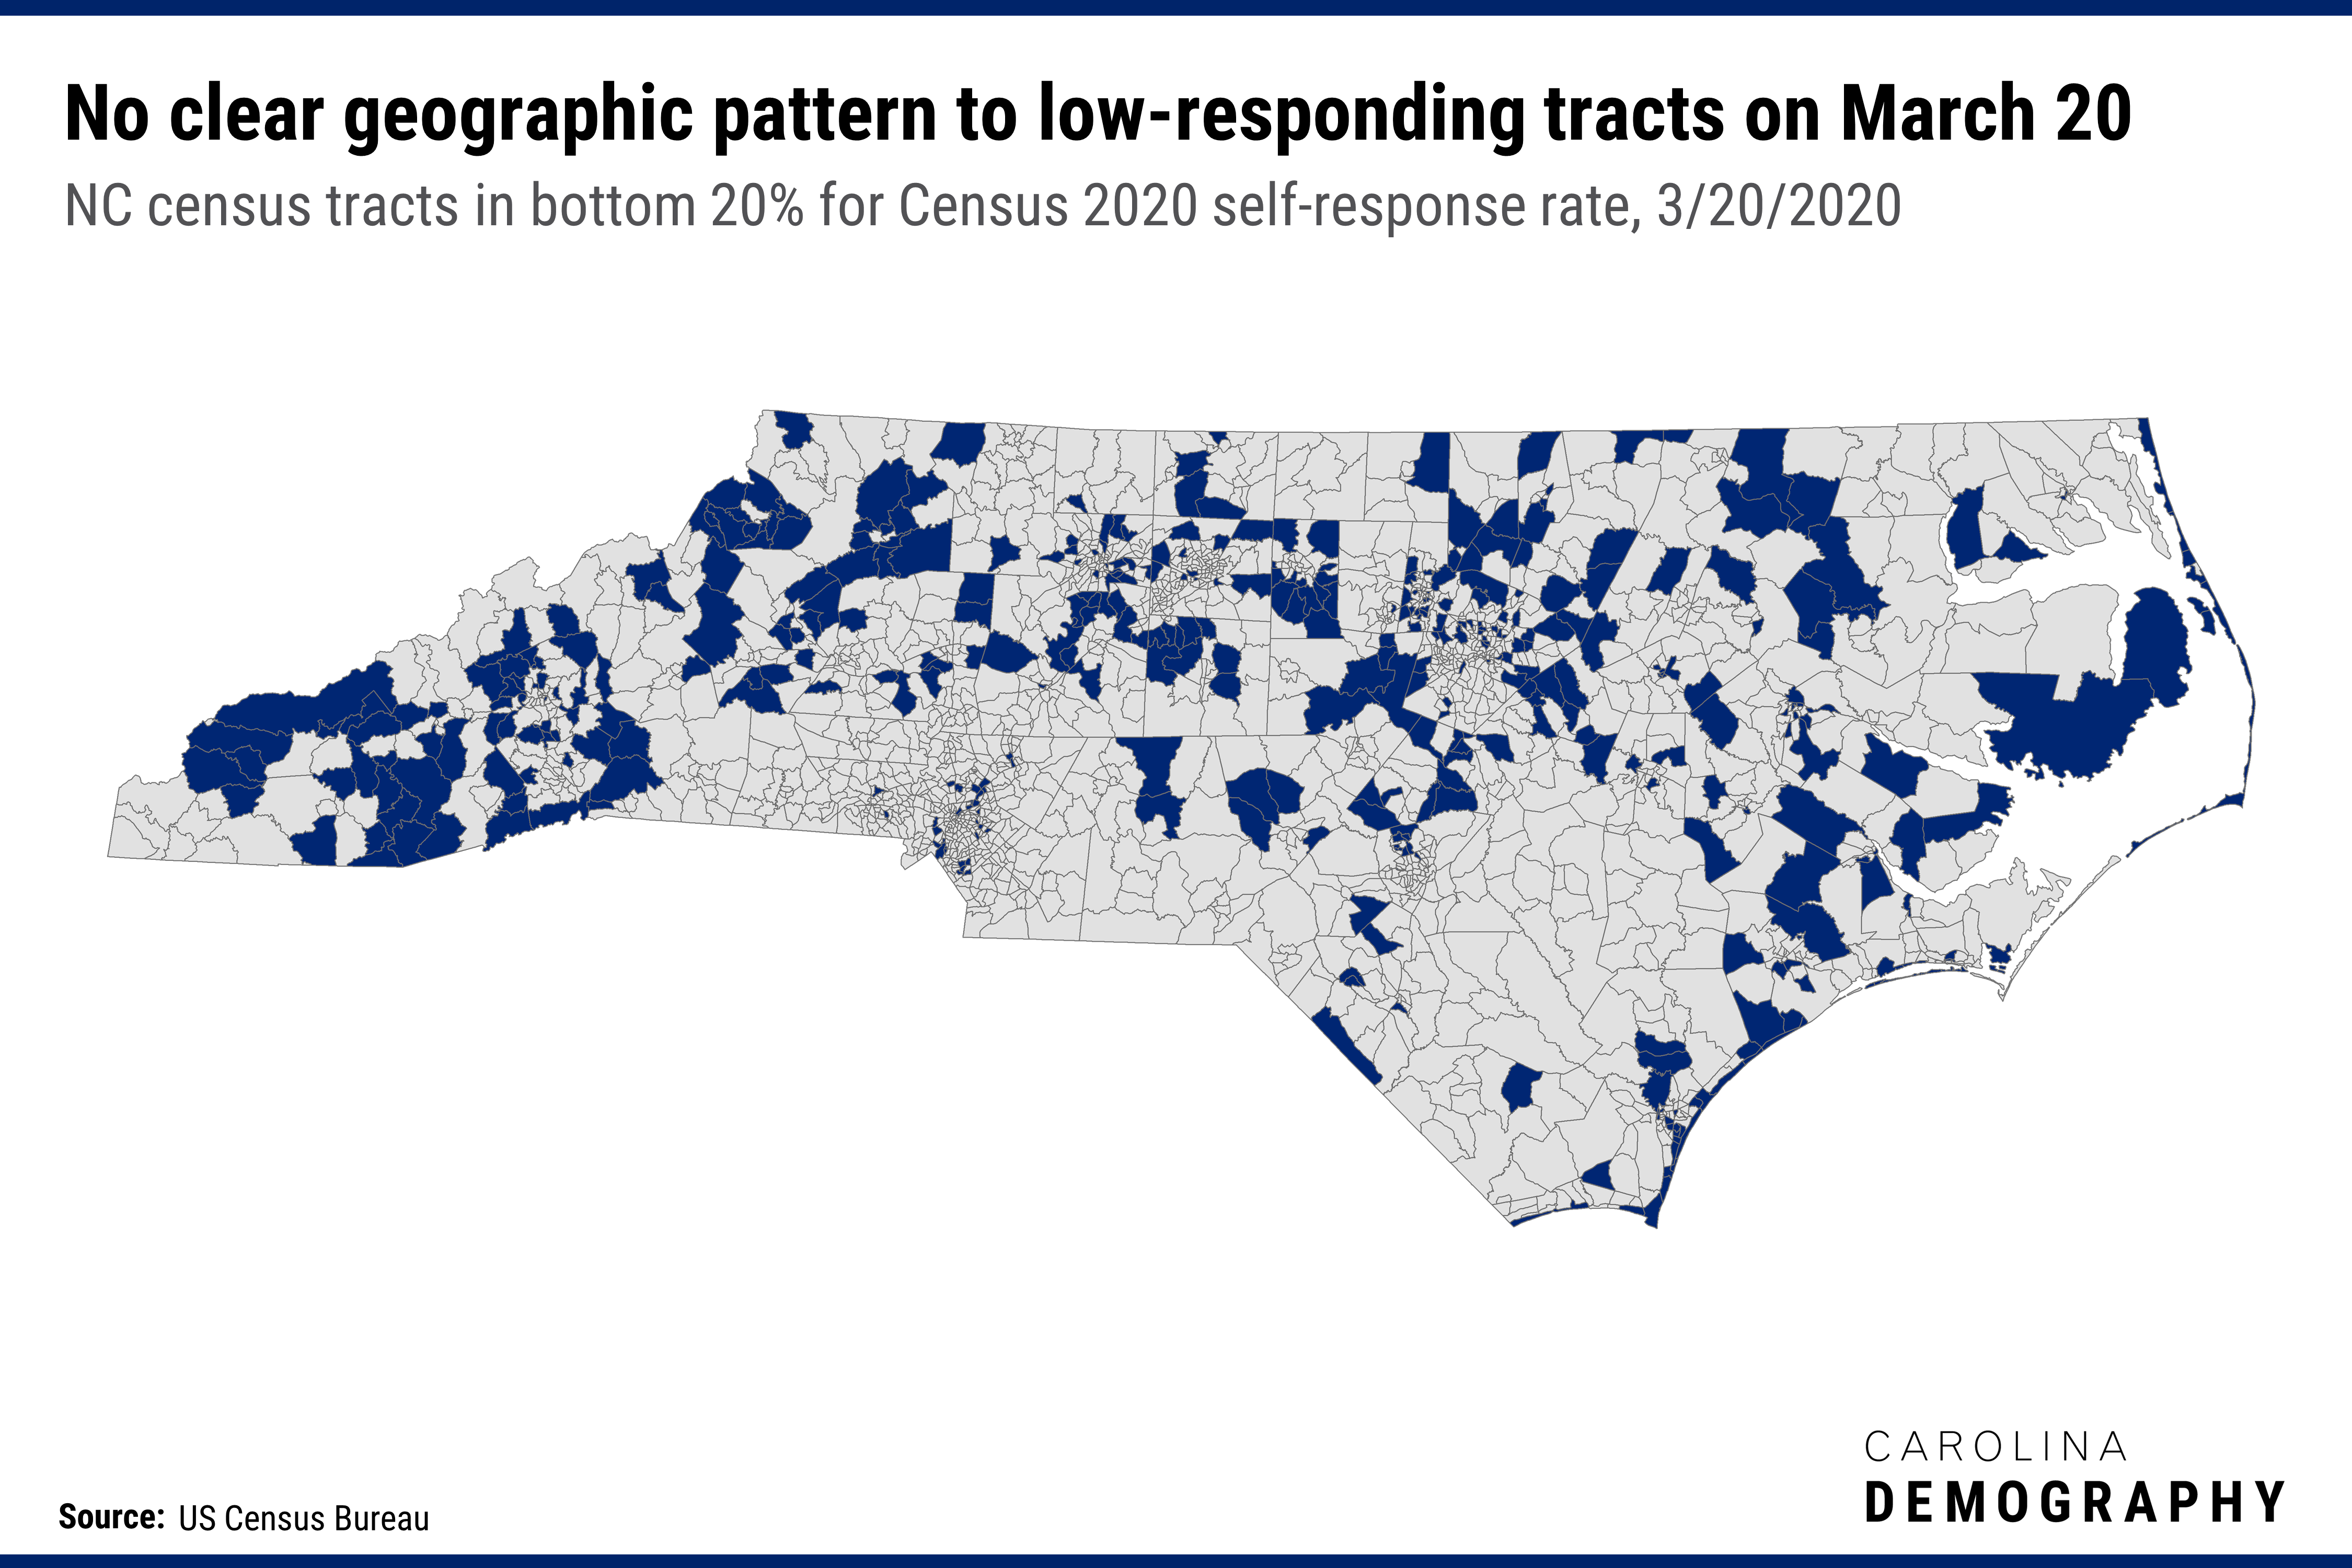 Map of NC showing no clear geographic pattern for lowest 20% responding census tracts on March 20.